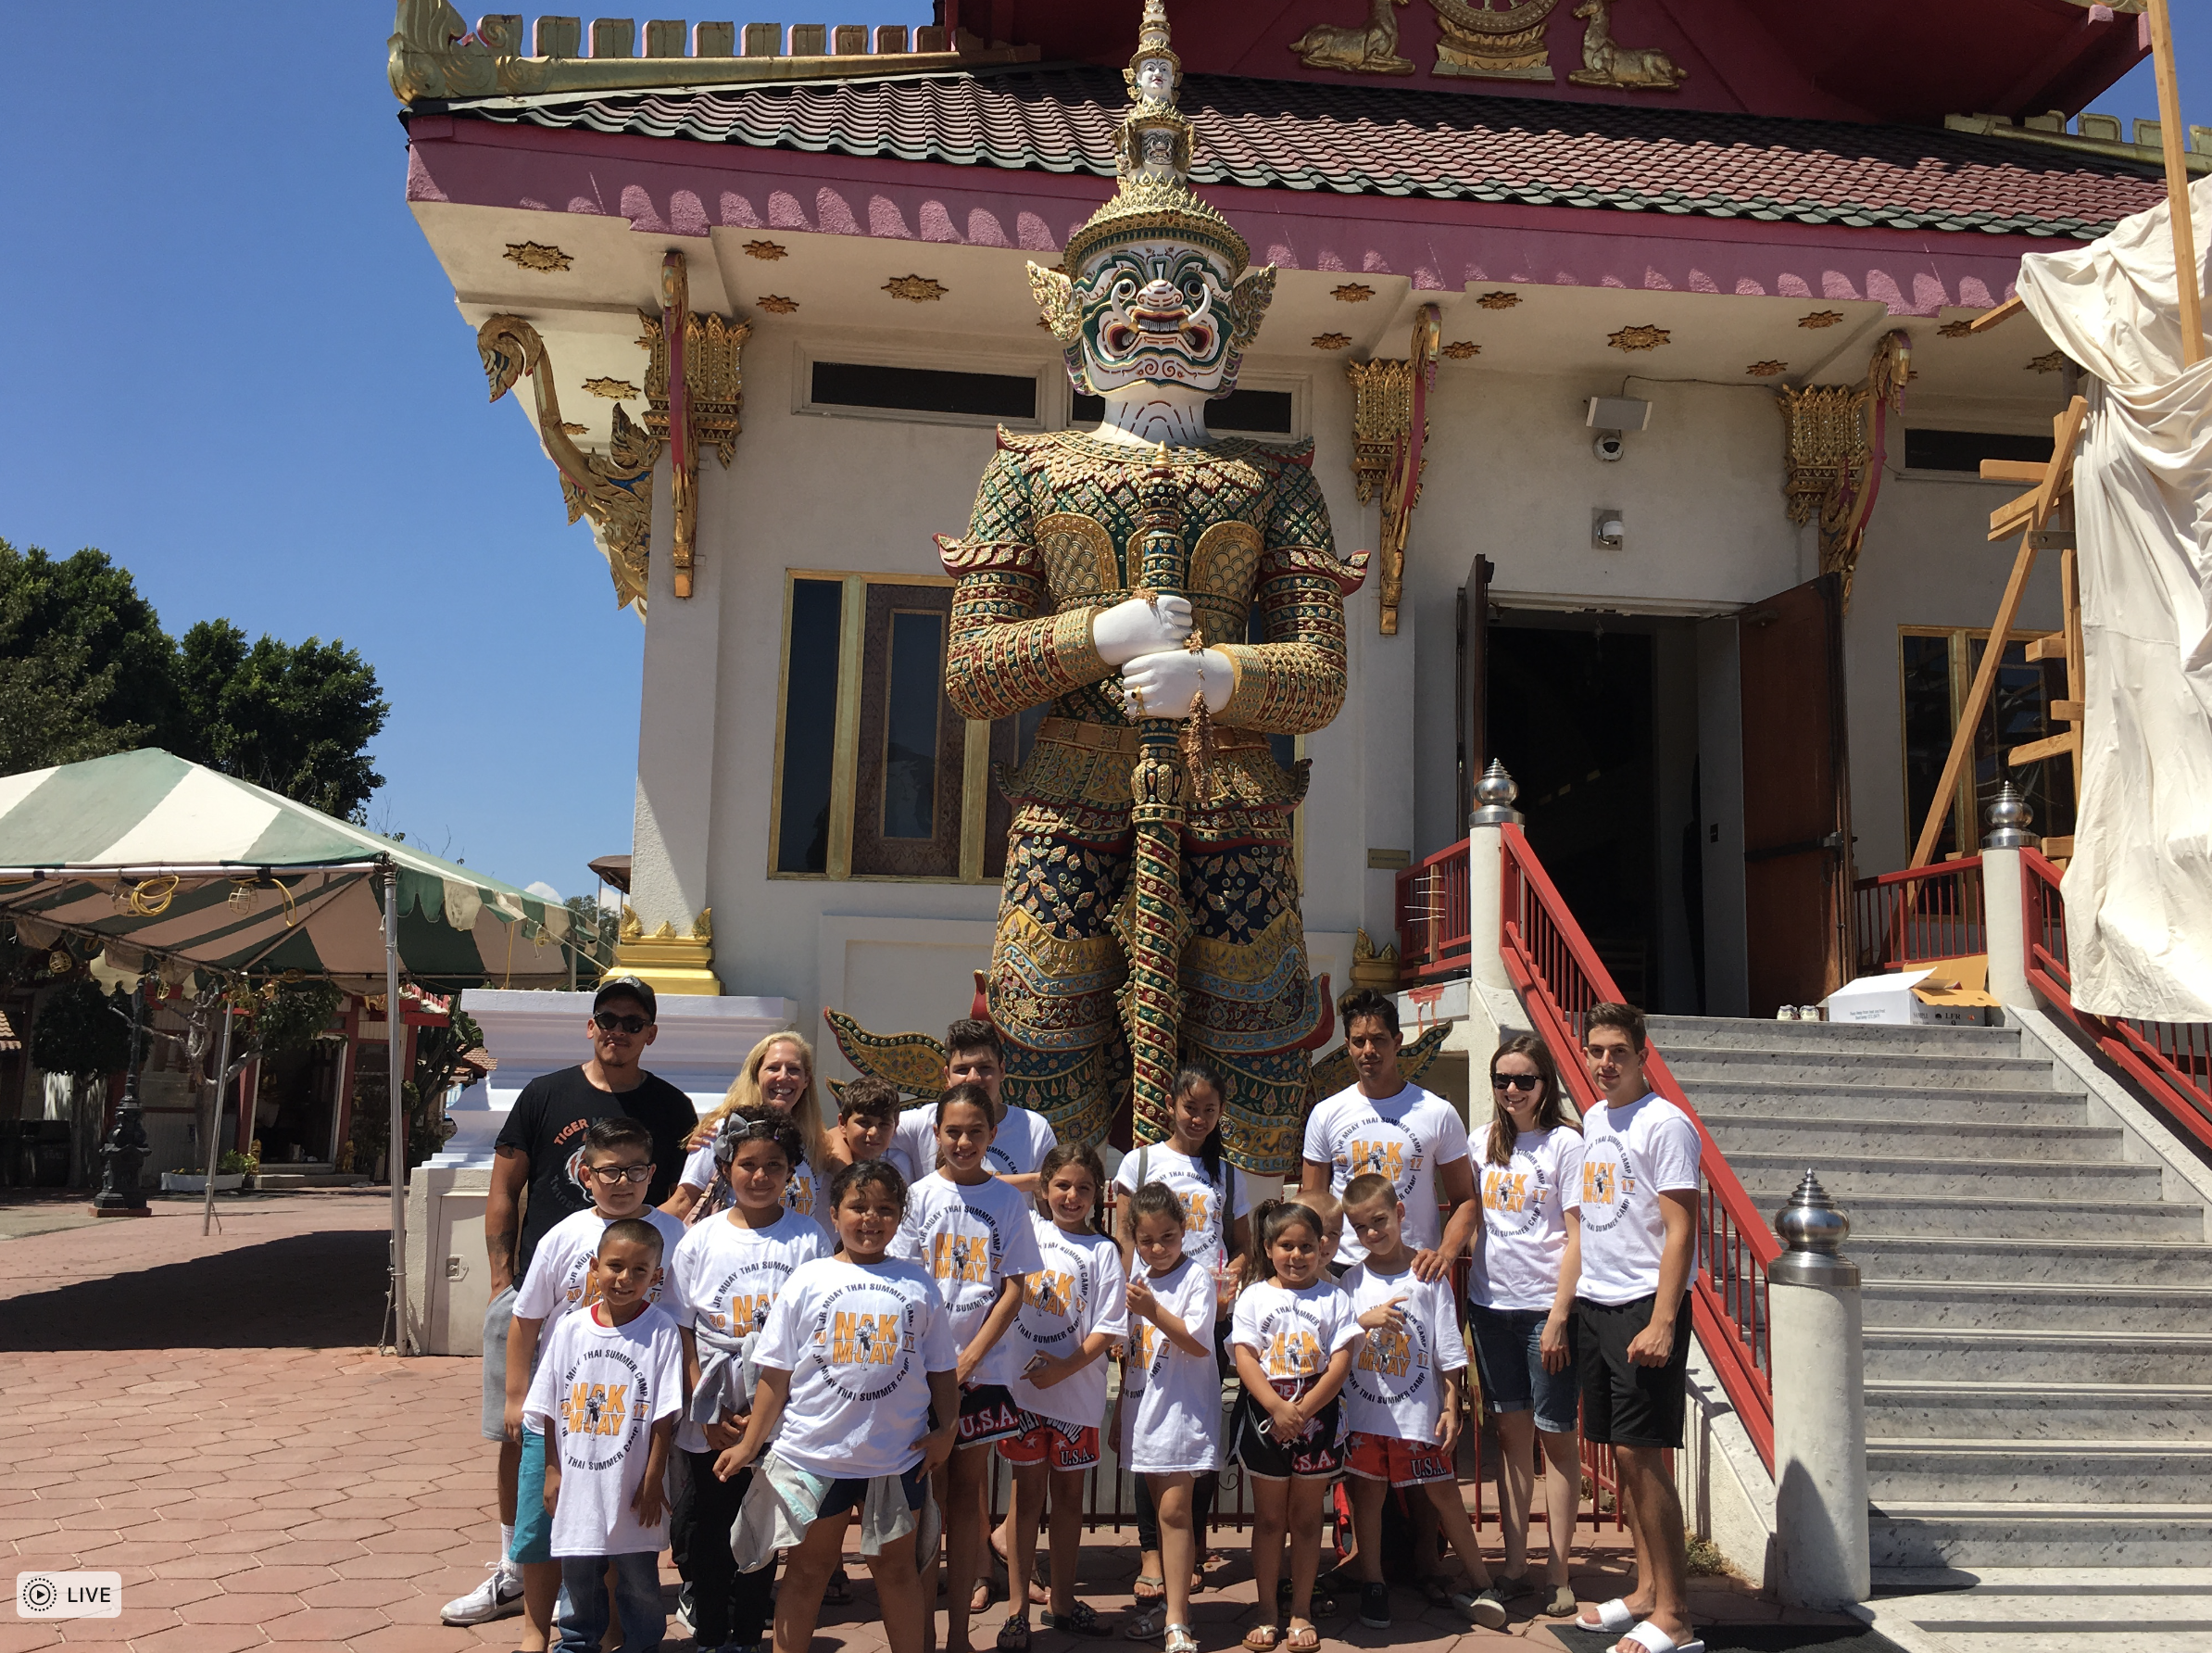 VISIT TO A THAI TEMPLE IN NORTH HOLLYWOOD